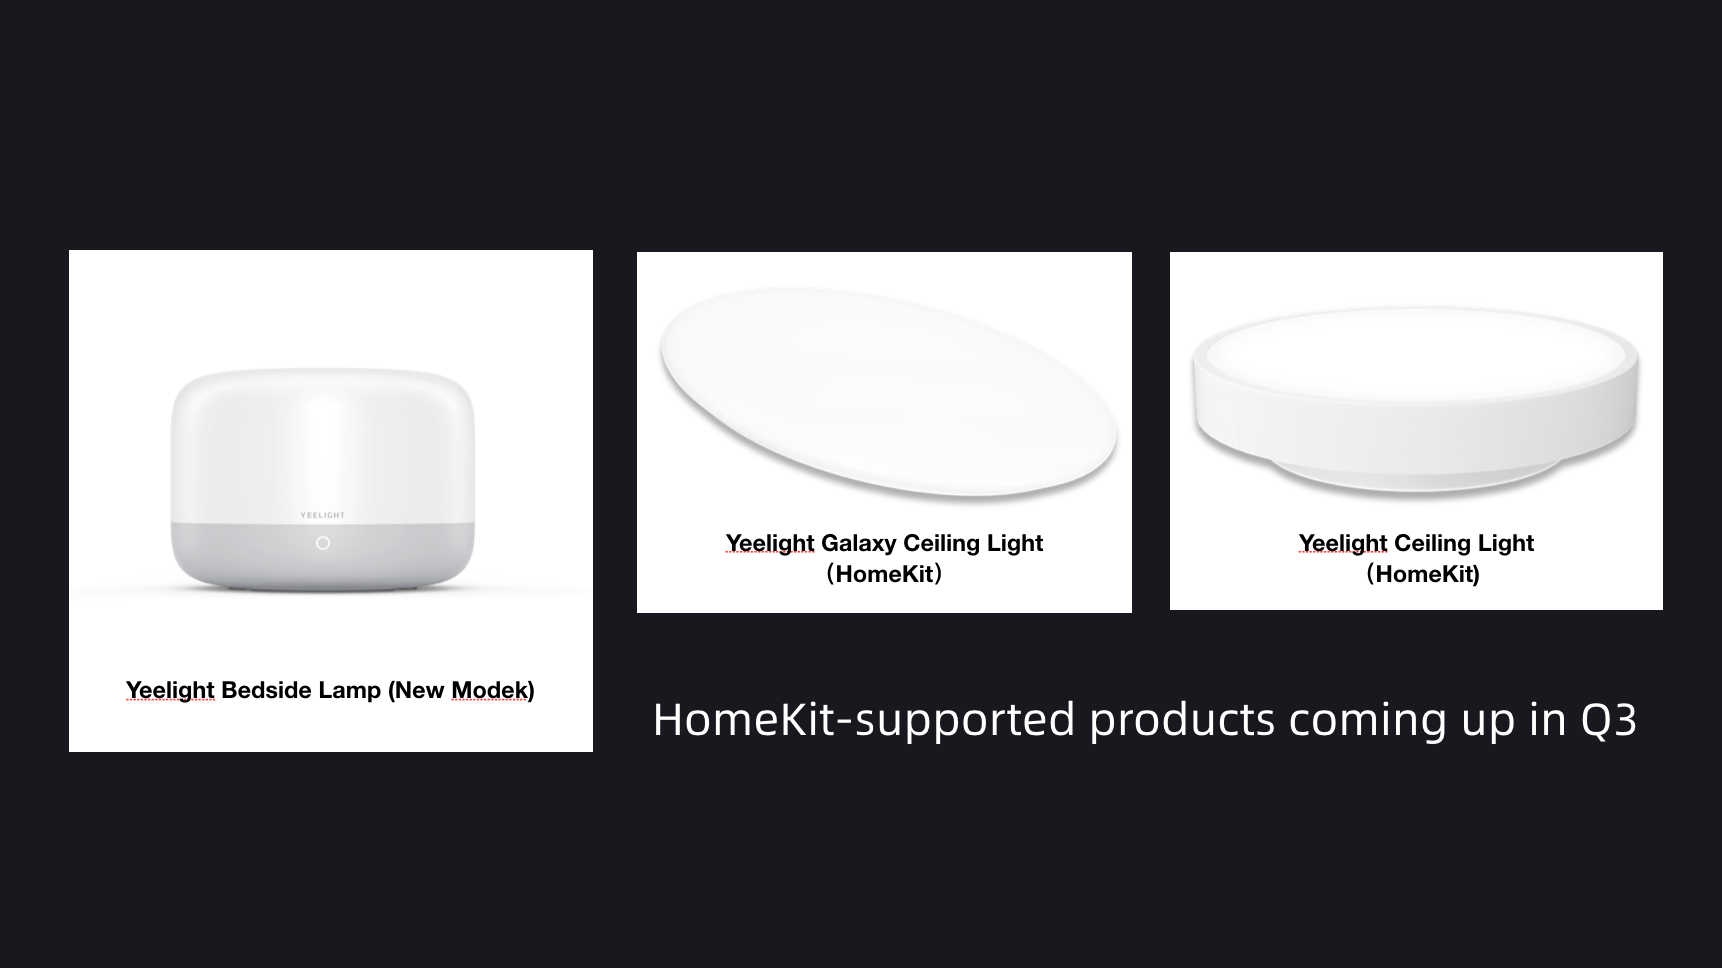 More products Supporting HomeKit Released in Q3